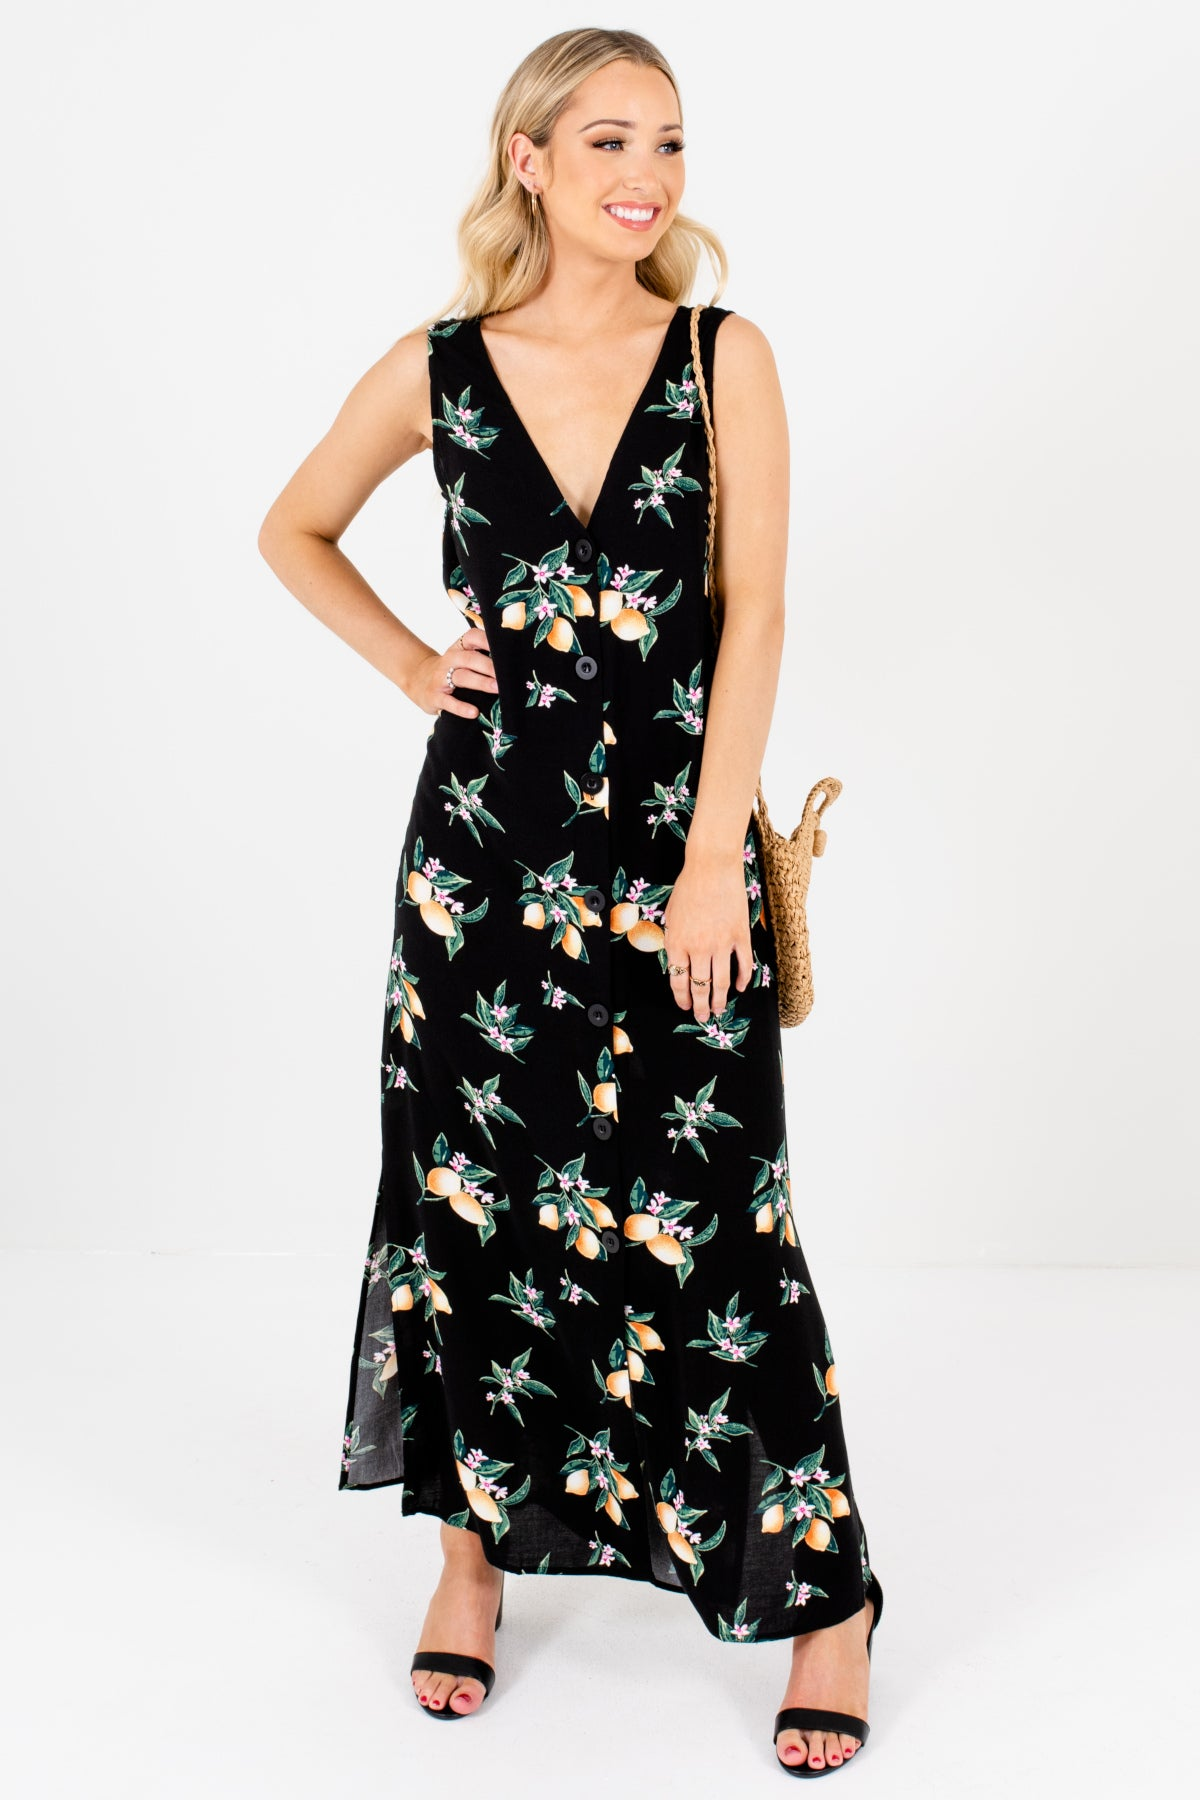 c275952158bfc Black Lemon Floral Print Button-Up Maxi Dresses Affordable Online Boutique